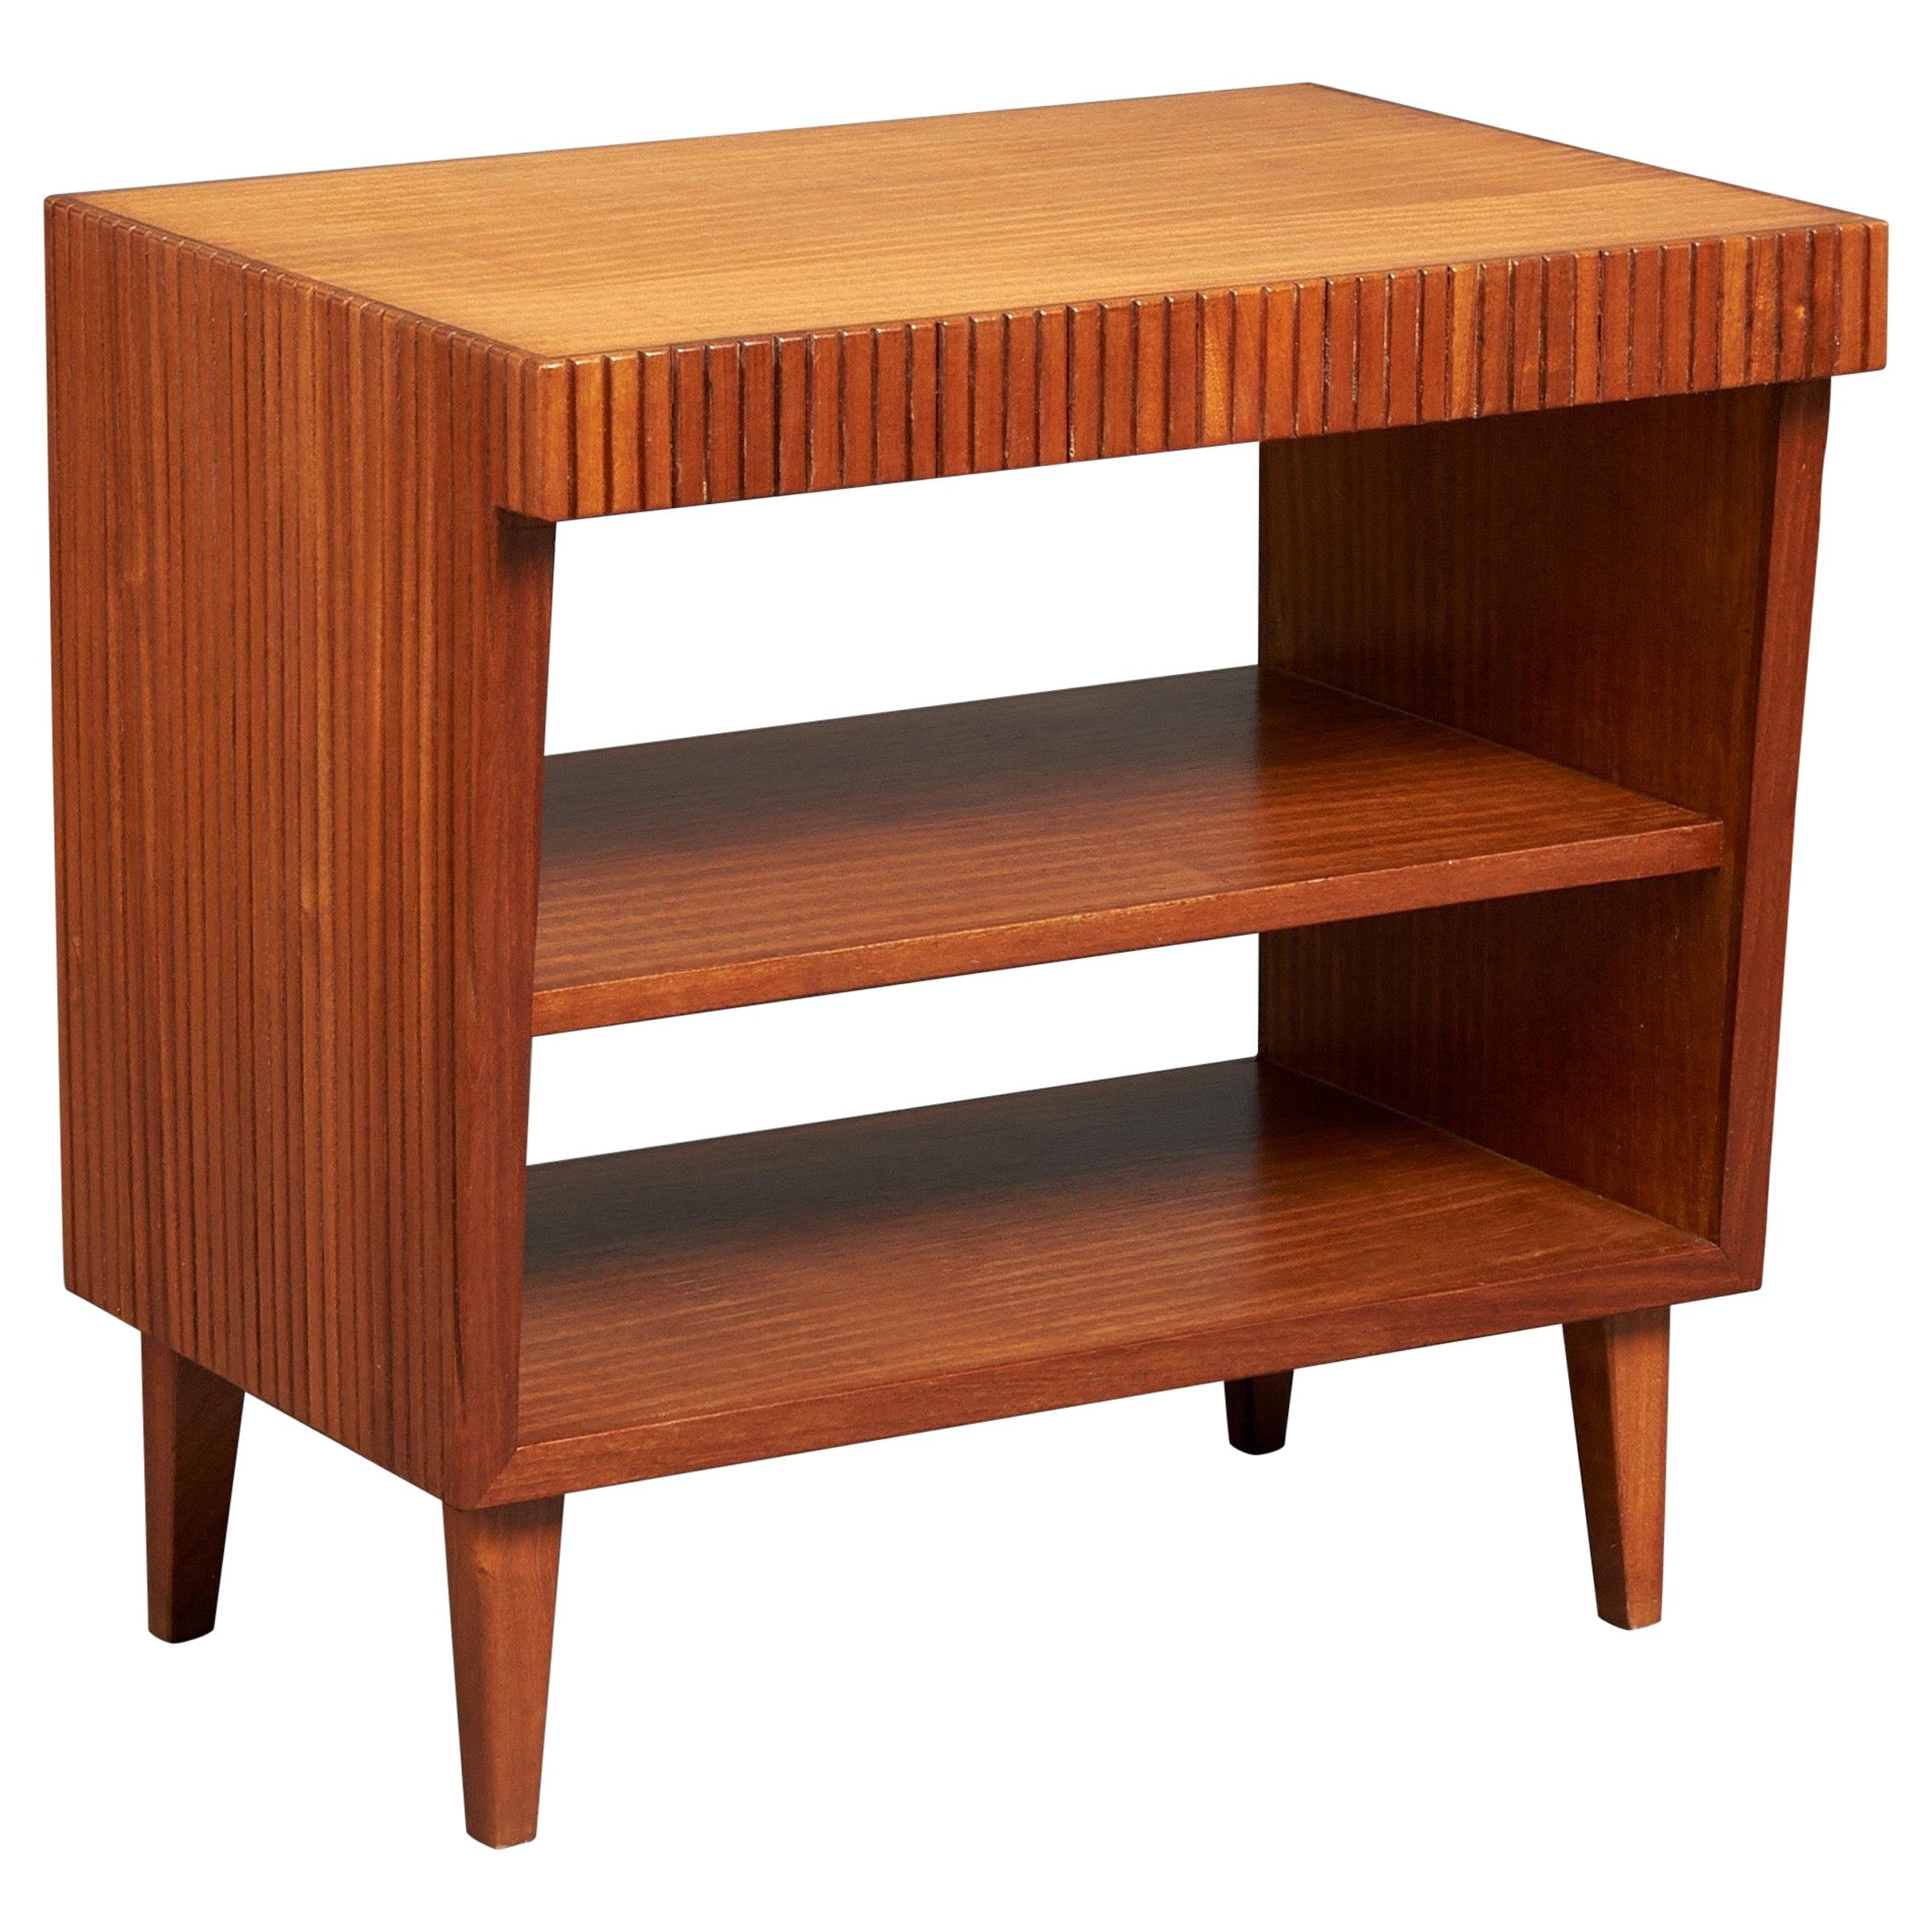 Gio Ponti, End Table with Bookshelves in Reeded Mahogany, Desk Set, Italy, 1950s